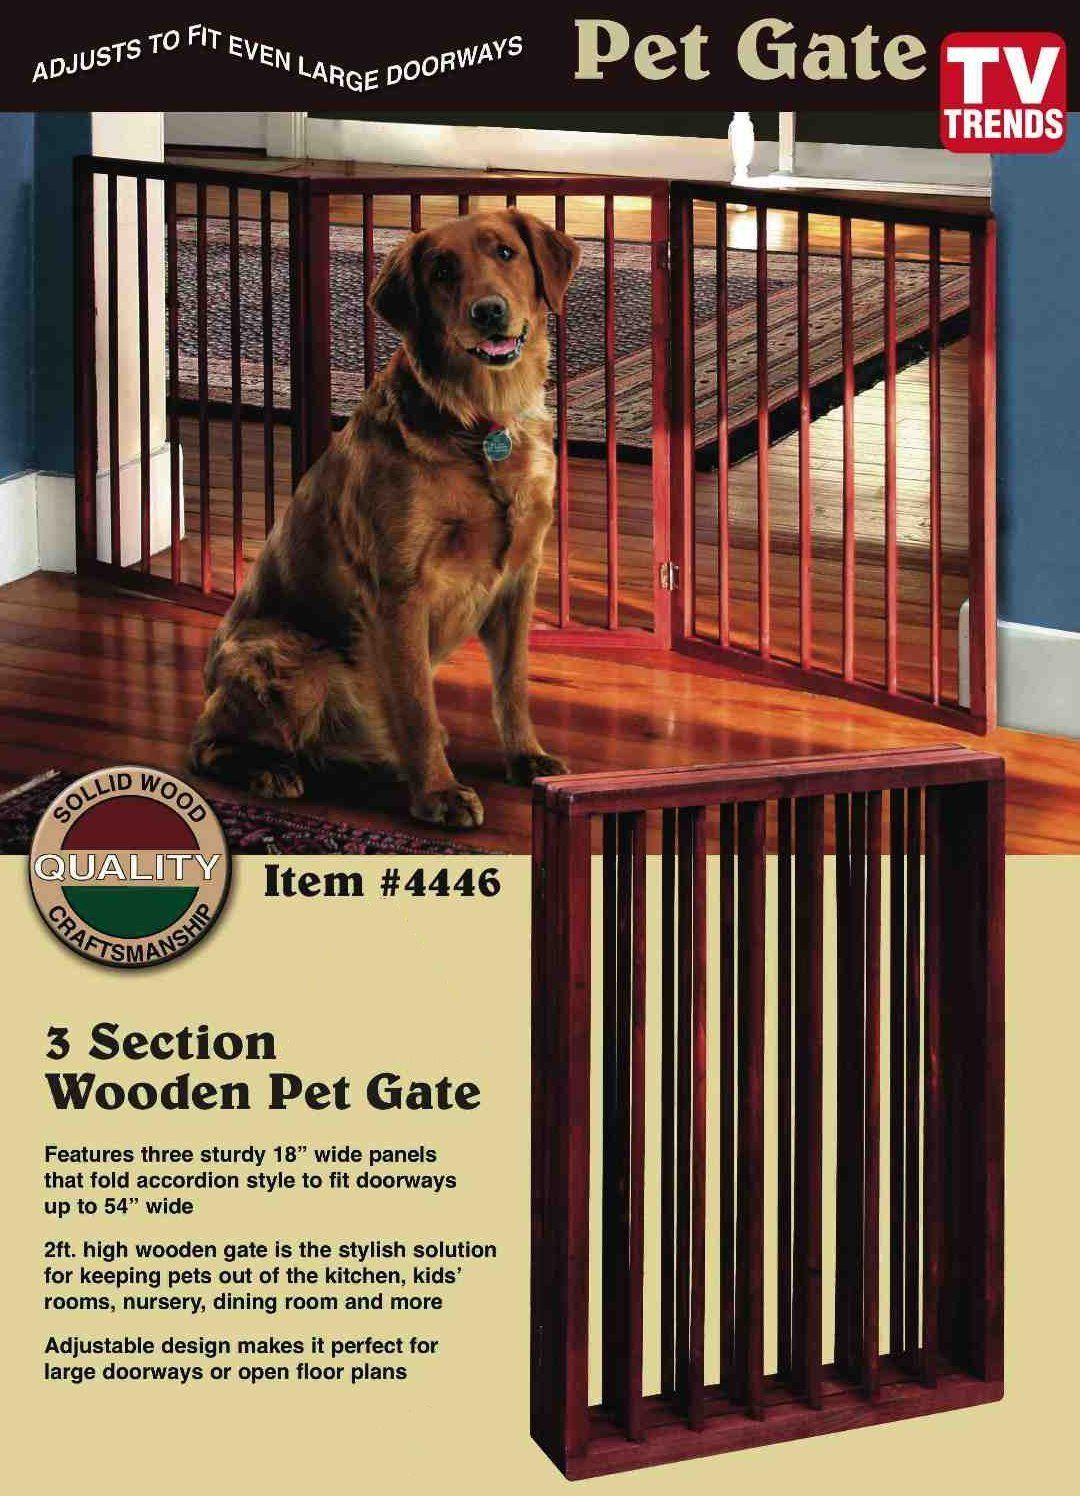 Folding Wood Pet Gate 3 Sections Click Image For More Details This Is An Affiliate Link Mydog